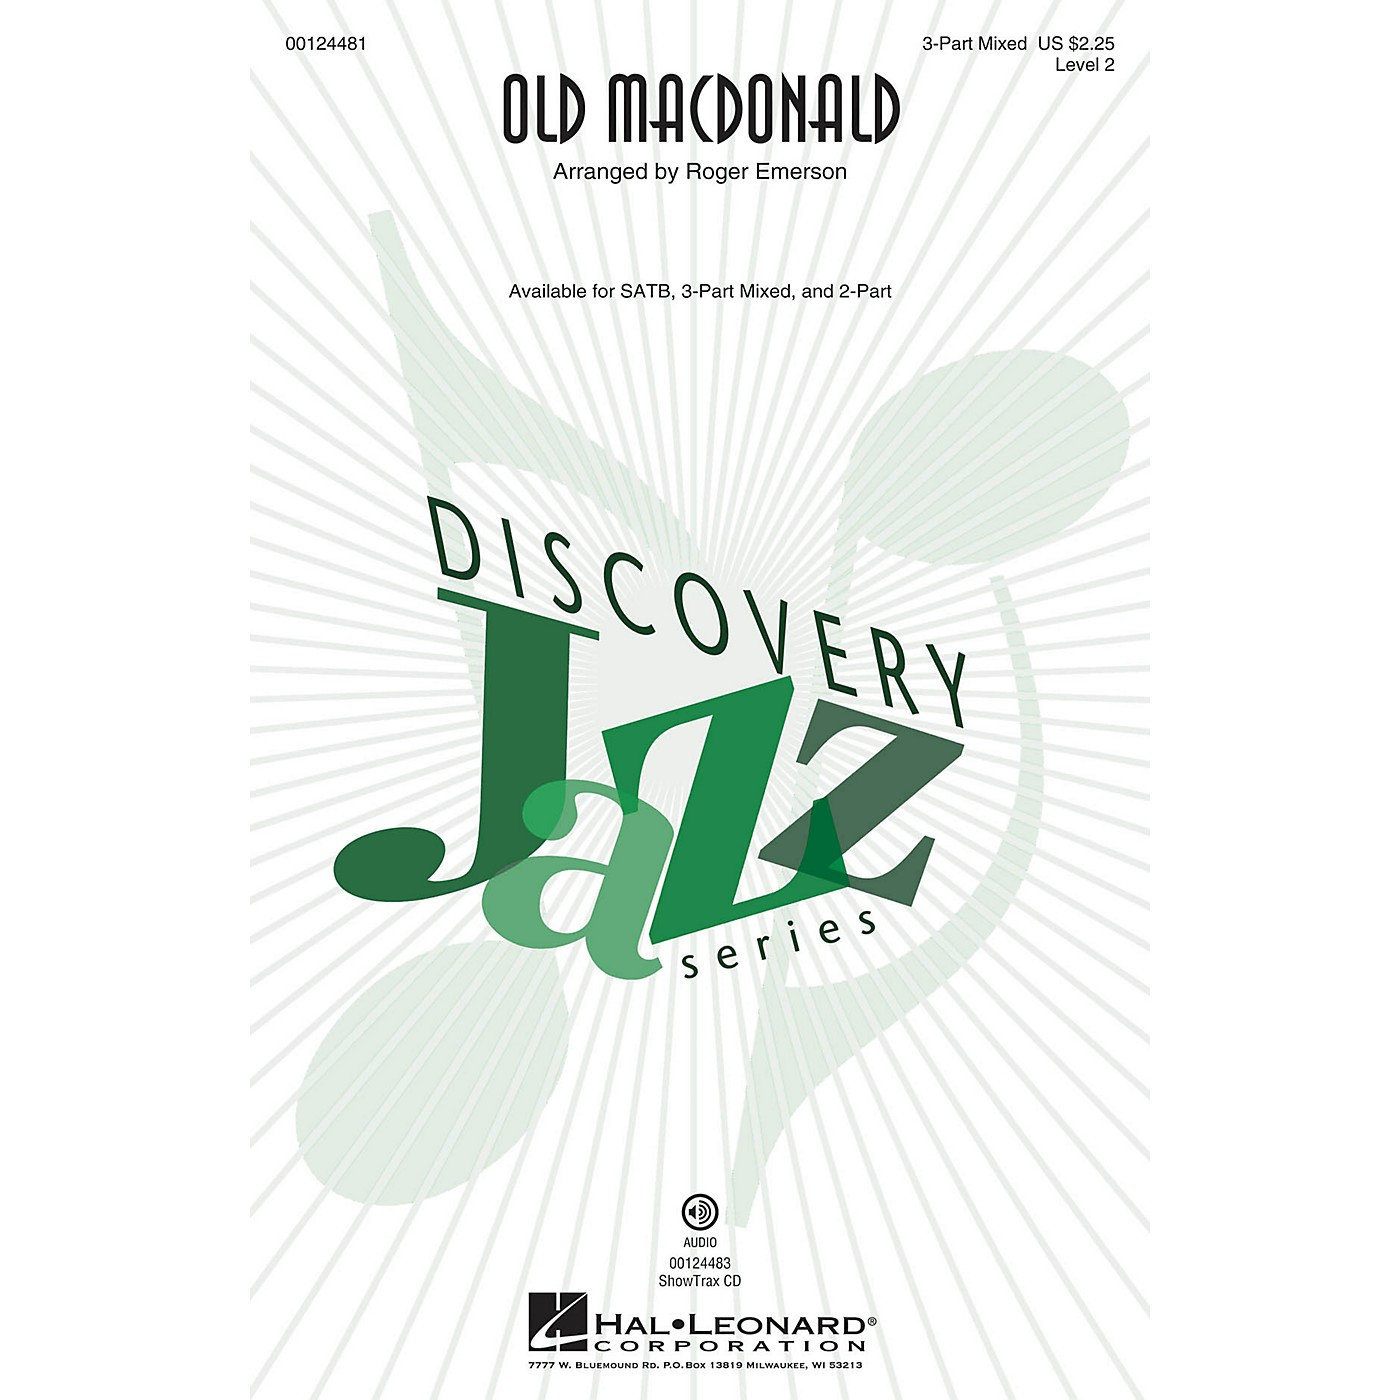 Hal Leonard Old MacDonald (Discovery Level 2) 3-Part Mixed arranged by Roger Emerson thumbnail